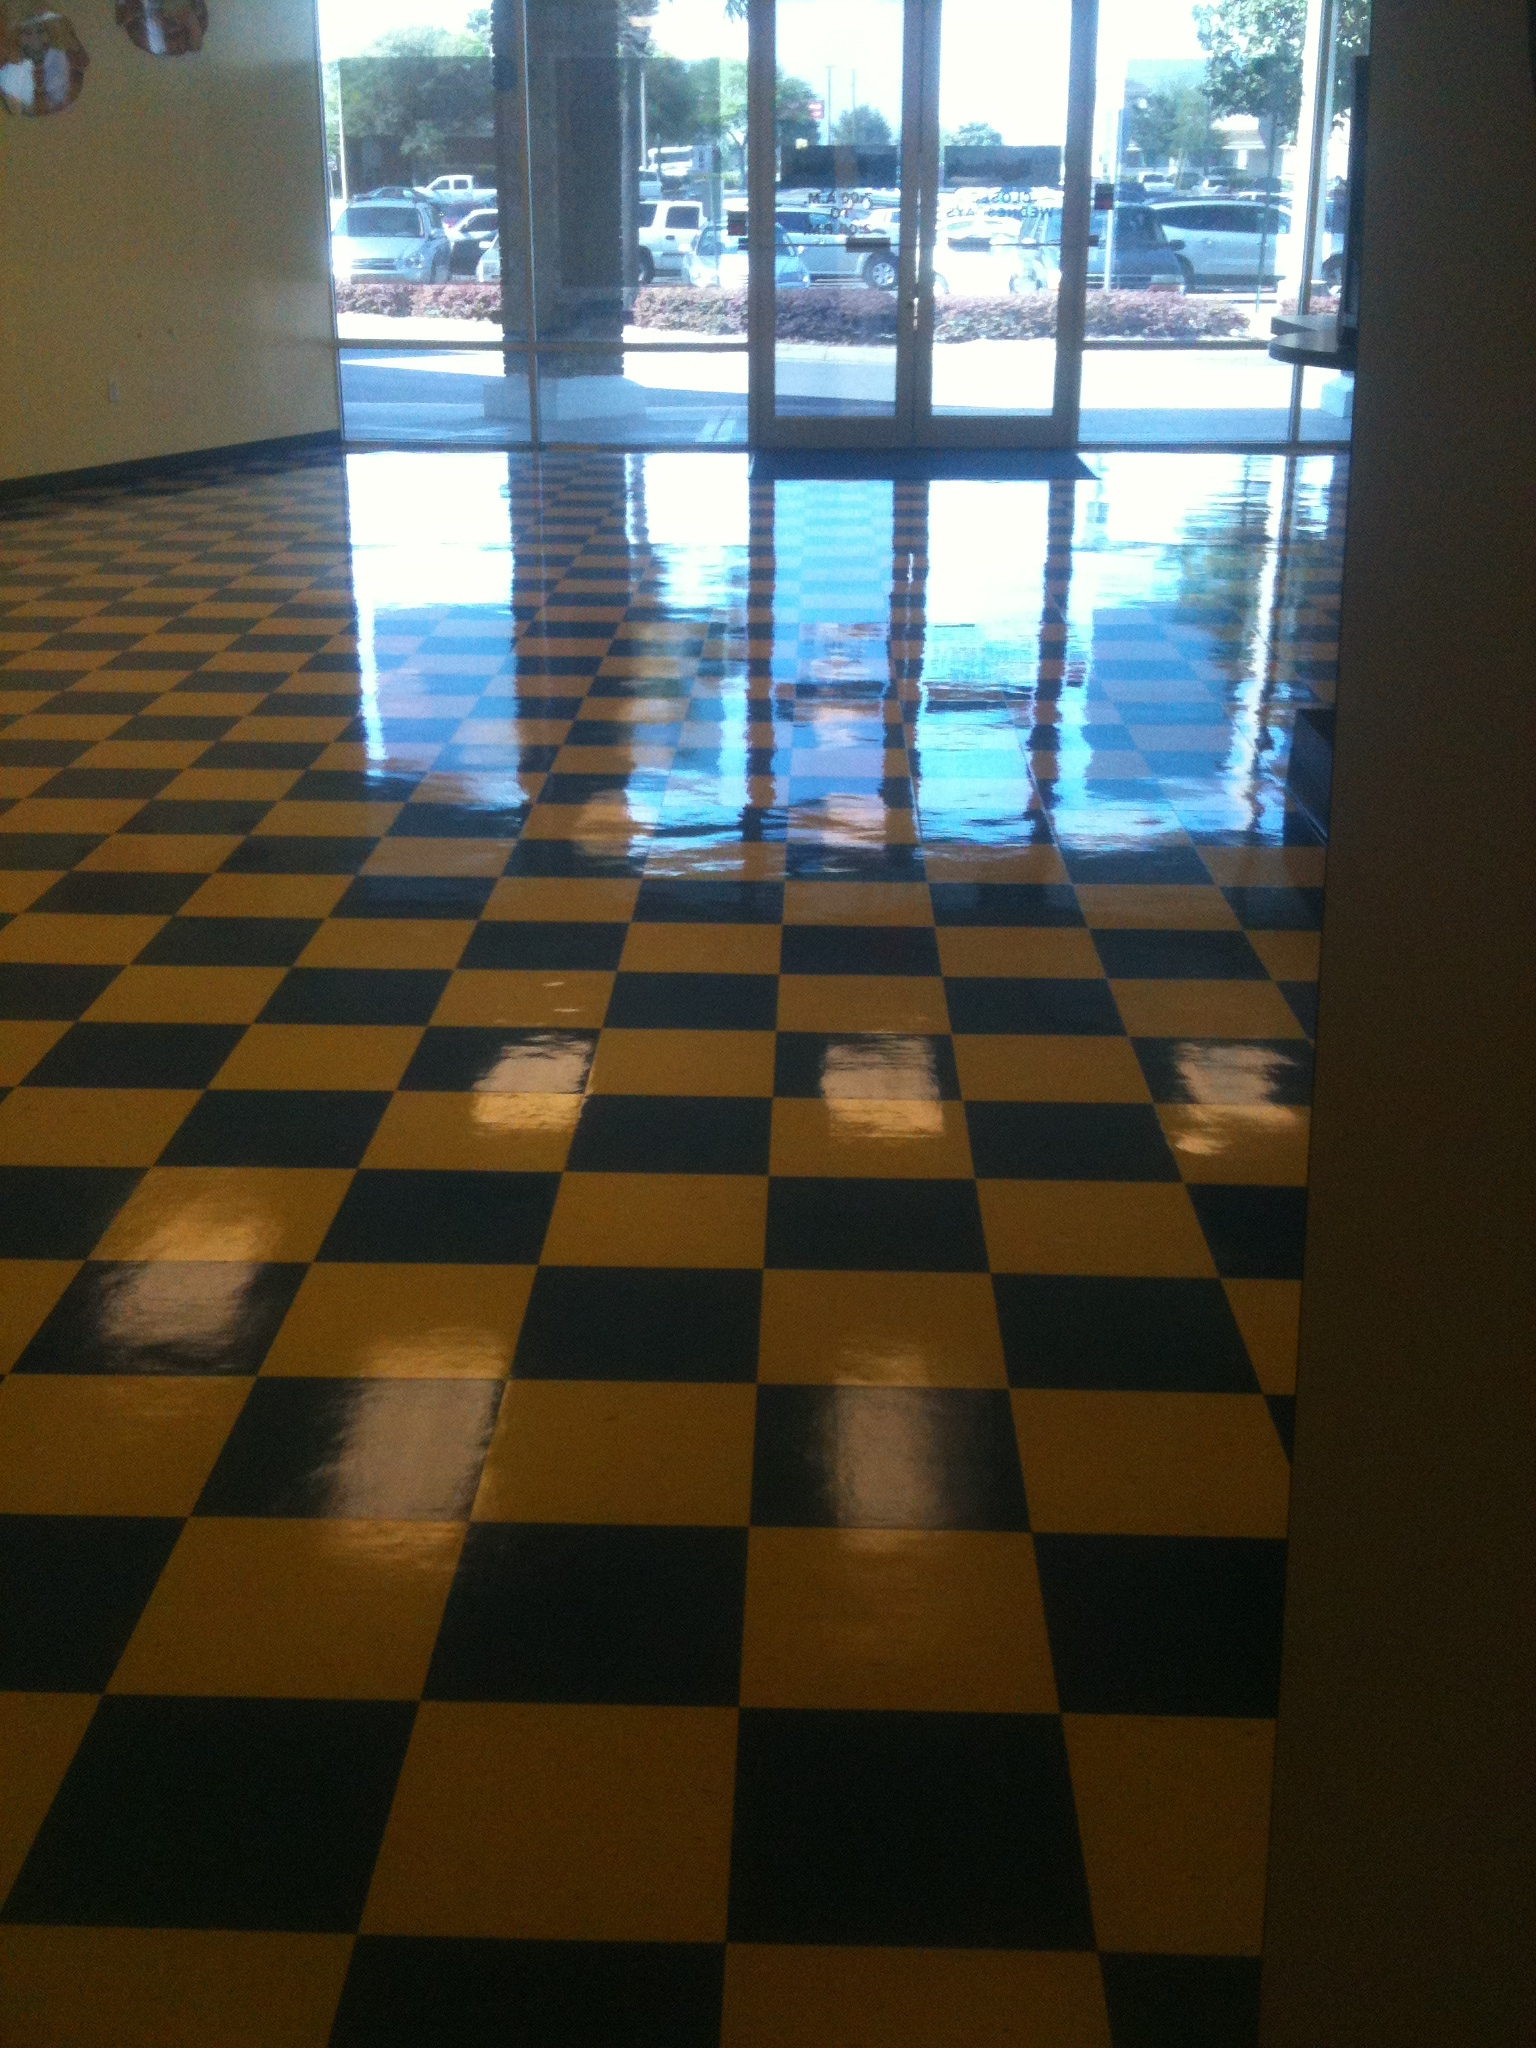 James Waugh - All Pro Janitorial, Inc. image 3